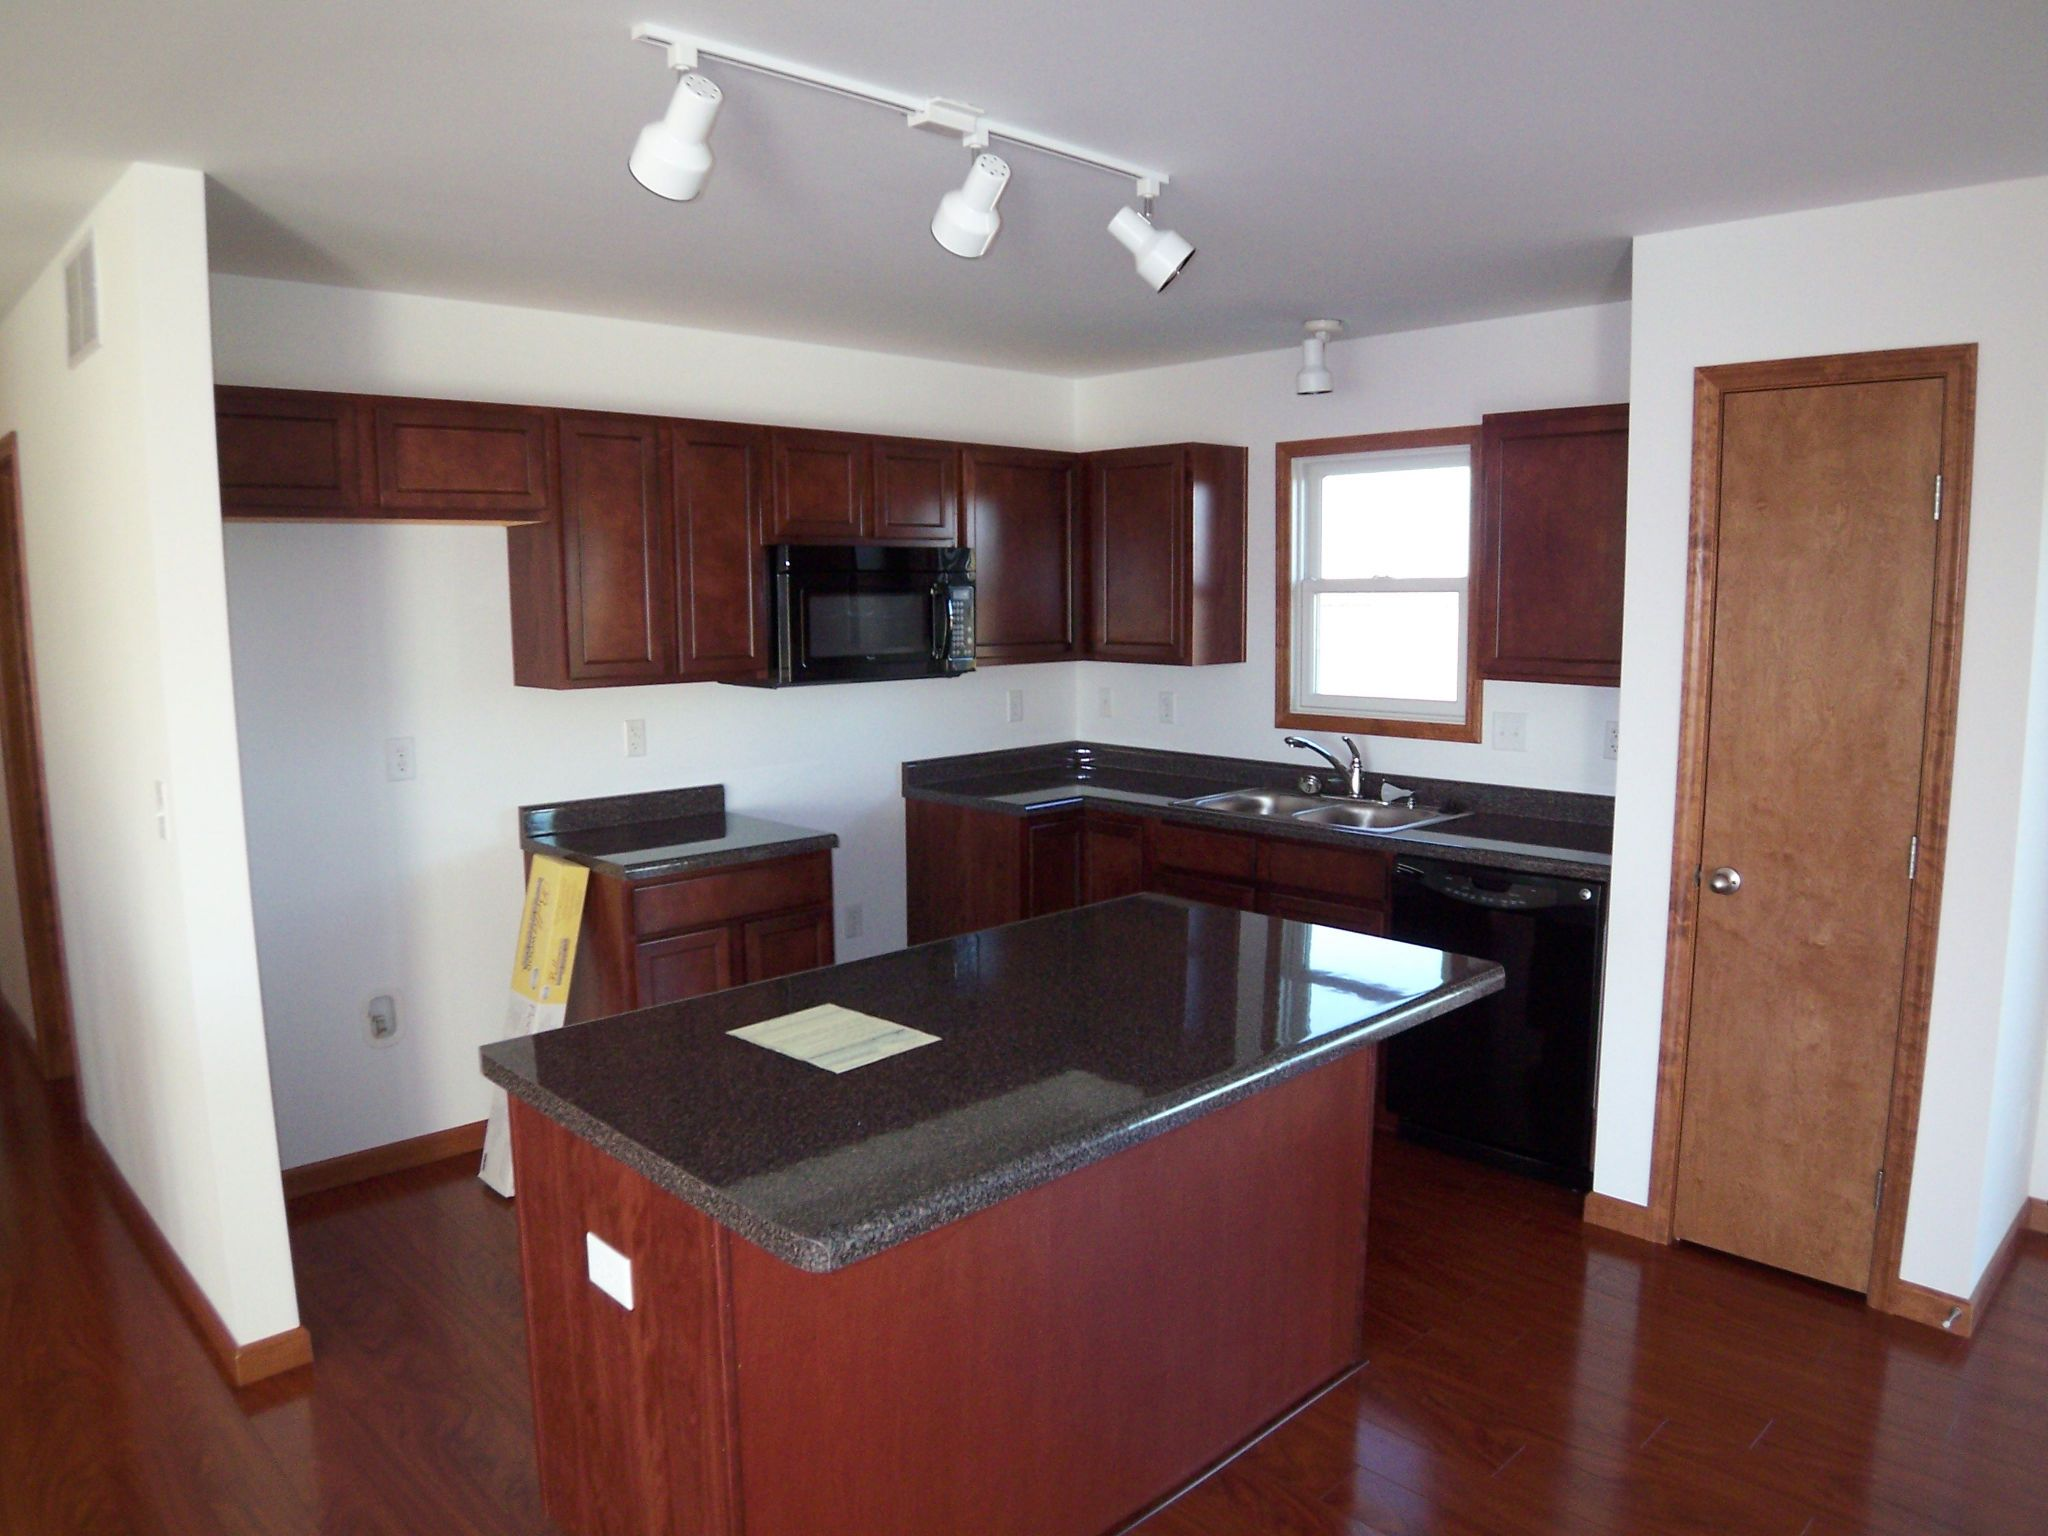 Kitchen featured in the Barrington By Accent Homes Inc. in Gary, IN